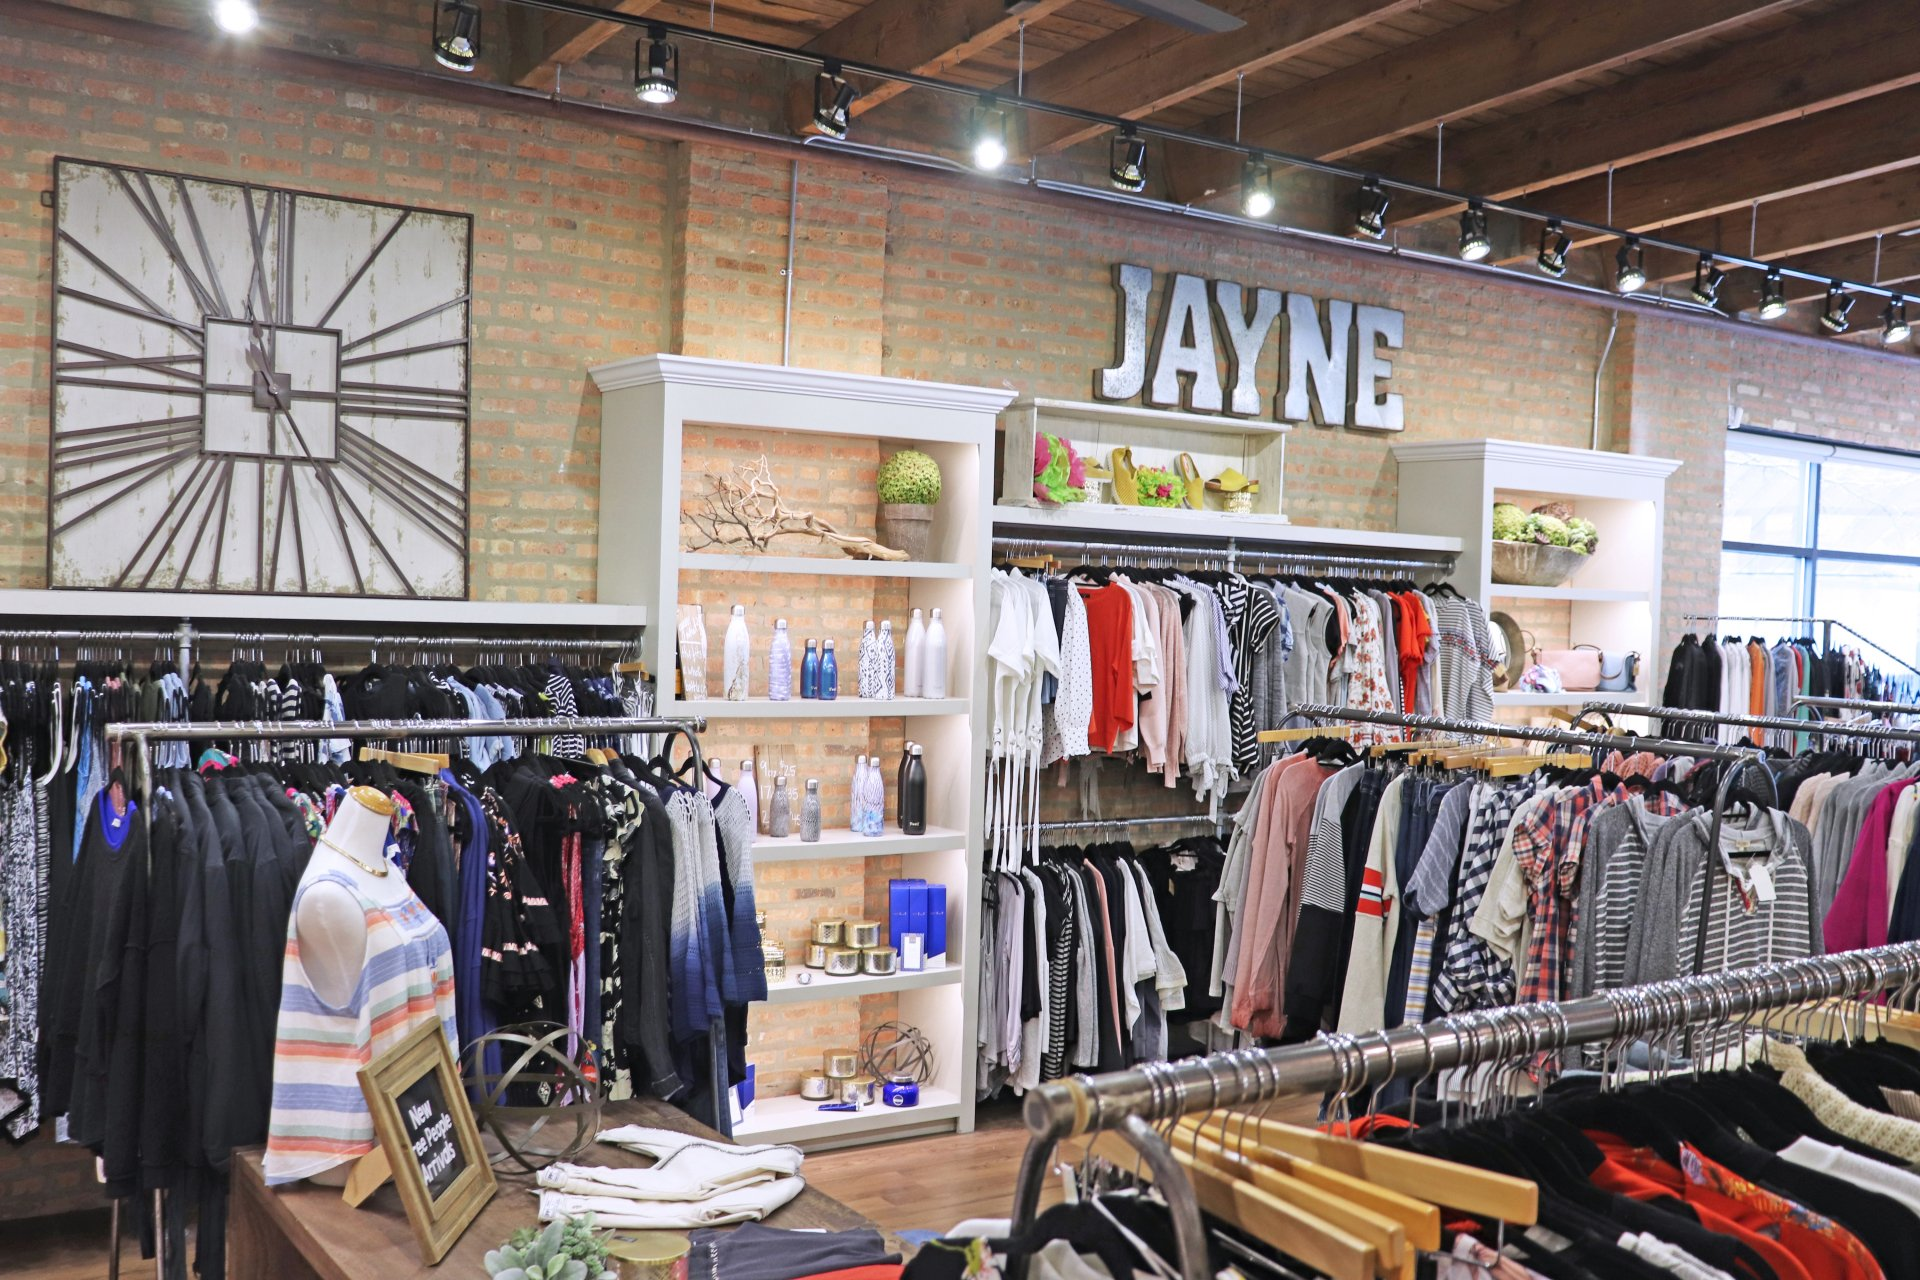 Home Shopping Retail Clothing Accessories Jewelry Denim Home Goods  Jayne Boutique